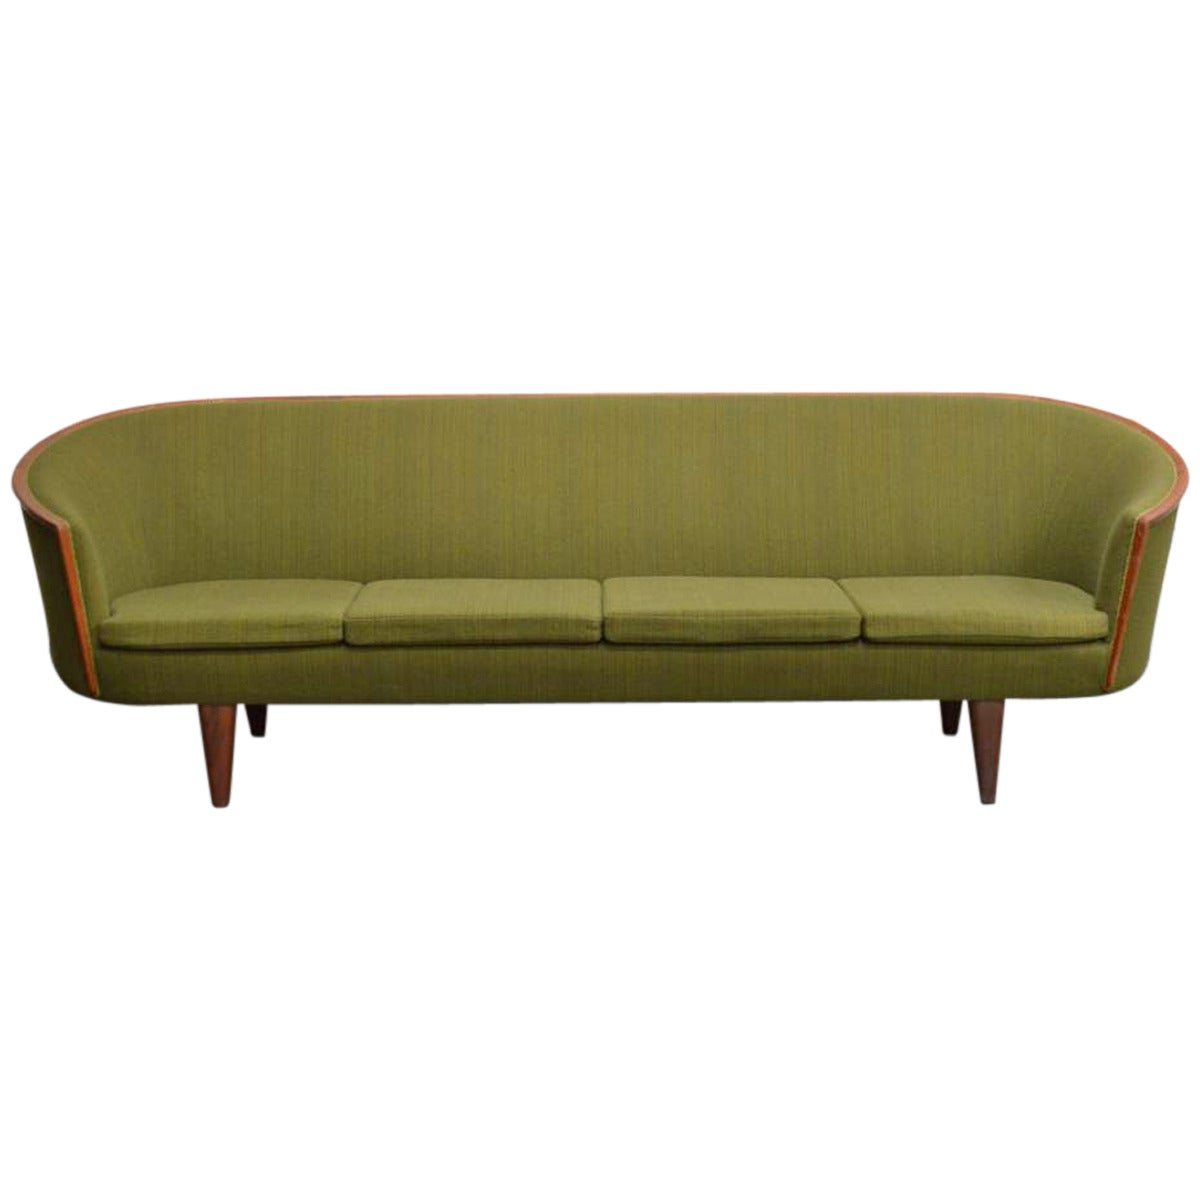 Exquisite Rare Mid-Century Barrel Back Sofa